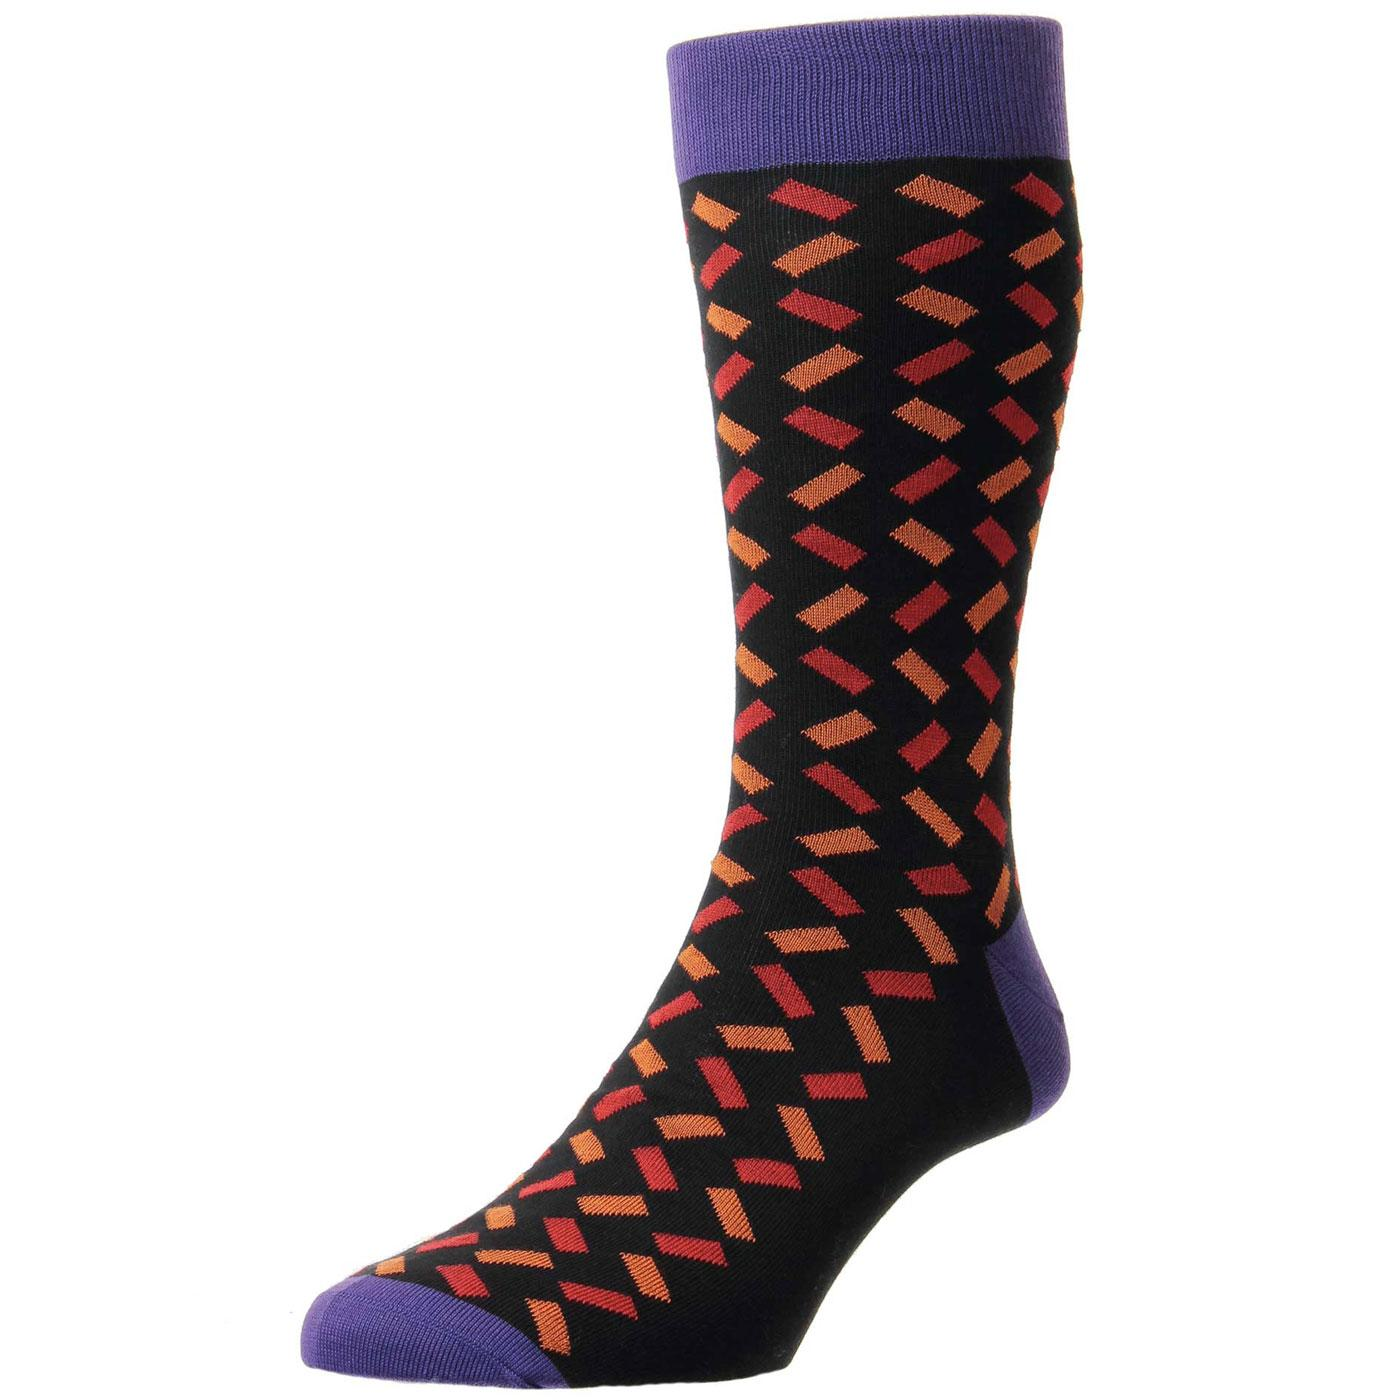 + Allen PANTHERELLA Men's Retro Pattern Socks